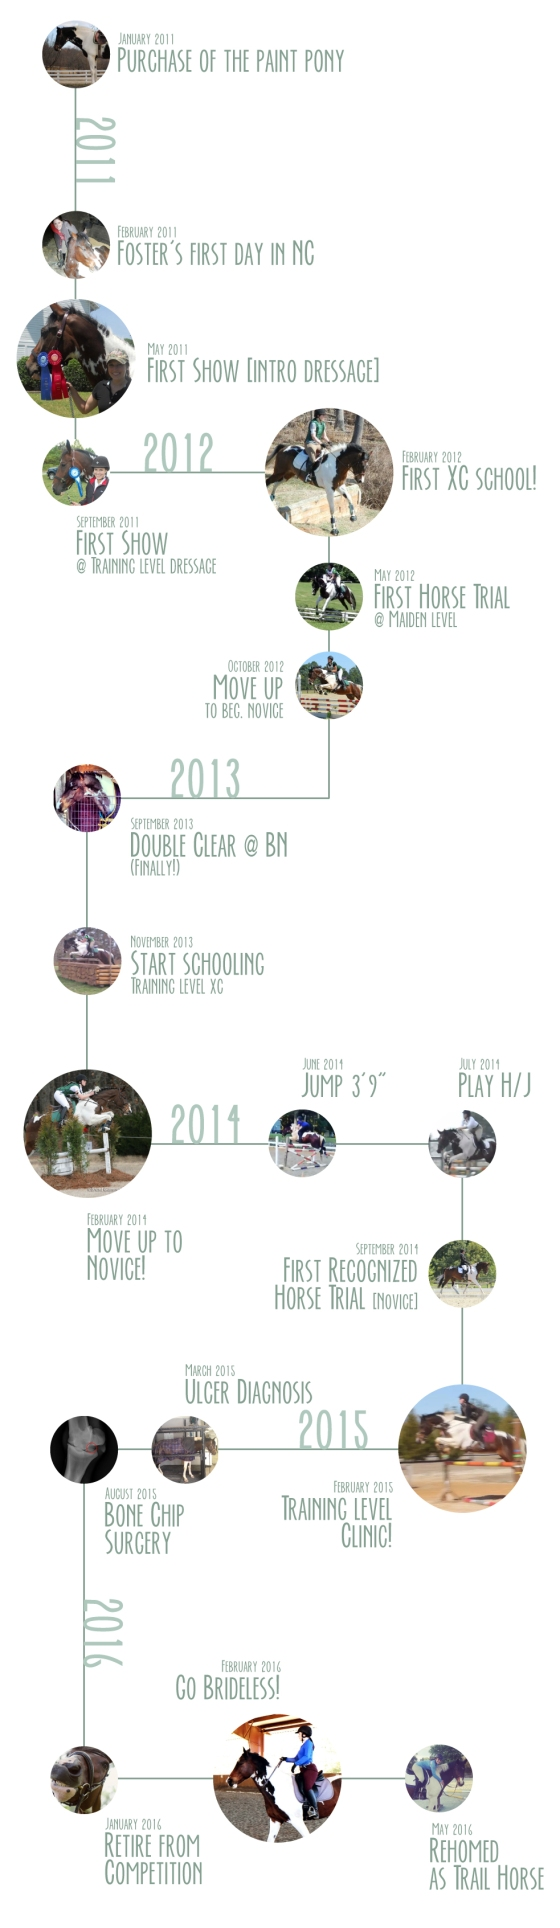 FosterInfographic_timeline